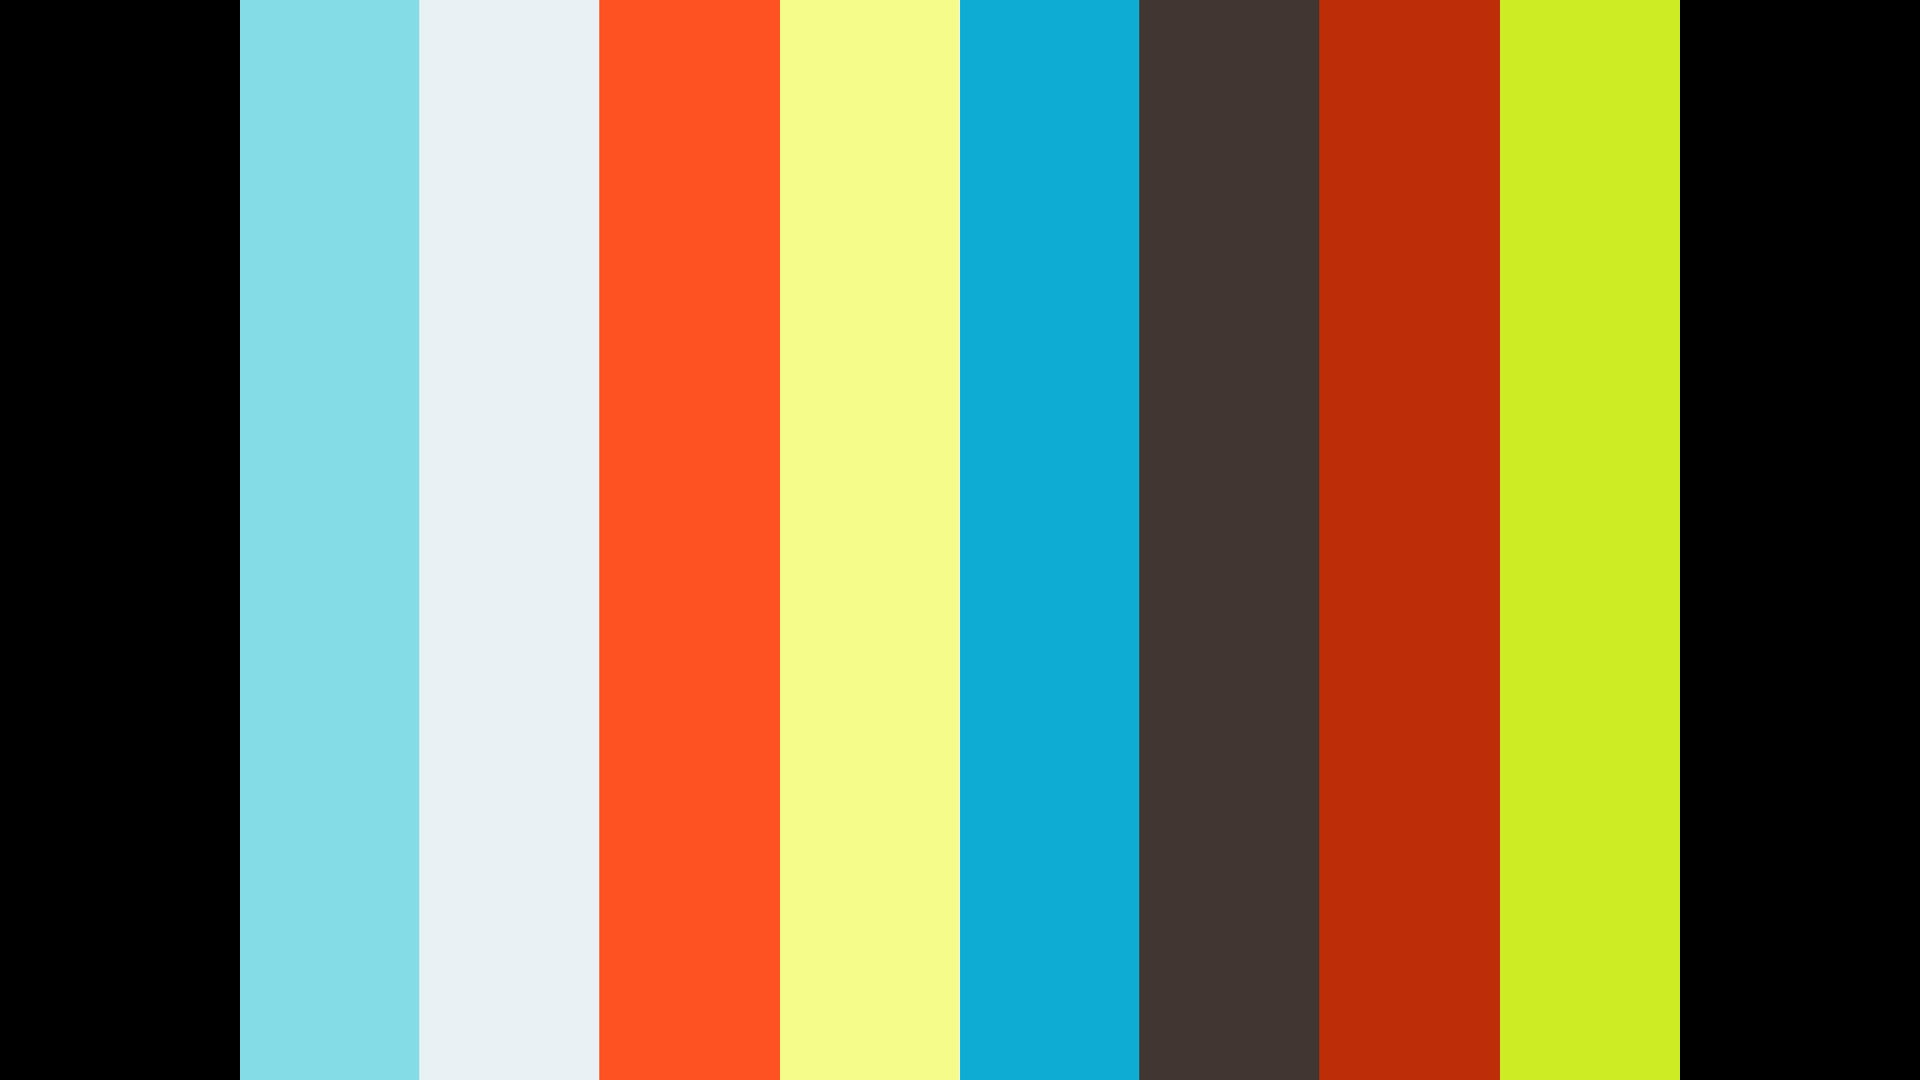 Jackie Miletic